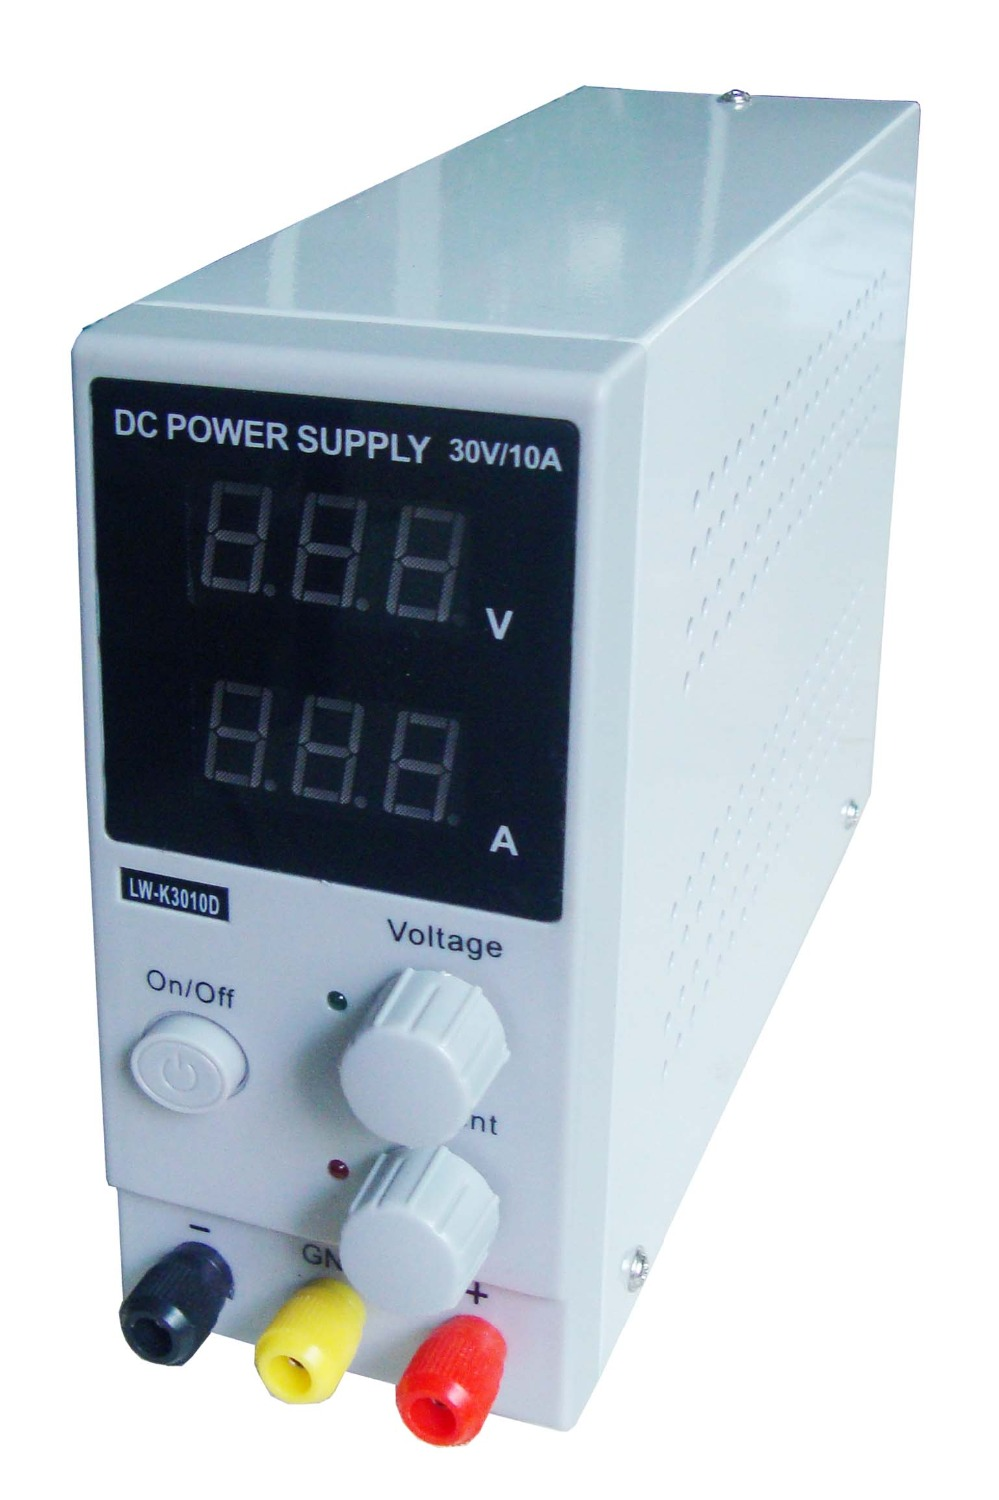 LW DC power supply 30V 10A Mini Adjustable Digital DC power supplise Switching Power supply 3 digits for US EU AU Plug 110-240V cps 3010ii 0 30v 0 10a low power digital adjustable dc power supply cps3010 switching power supply